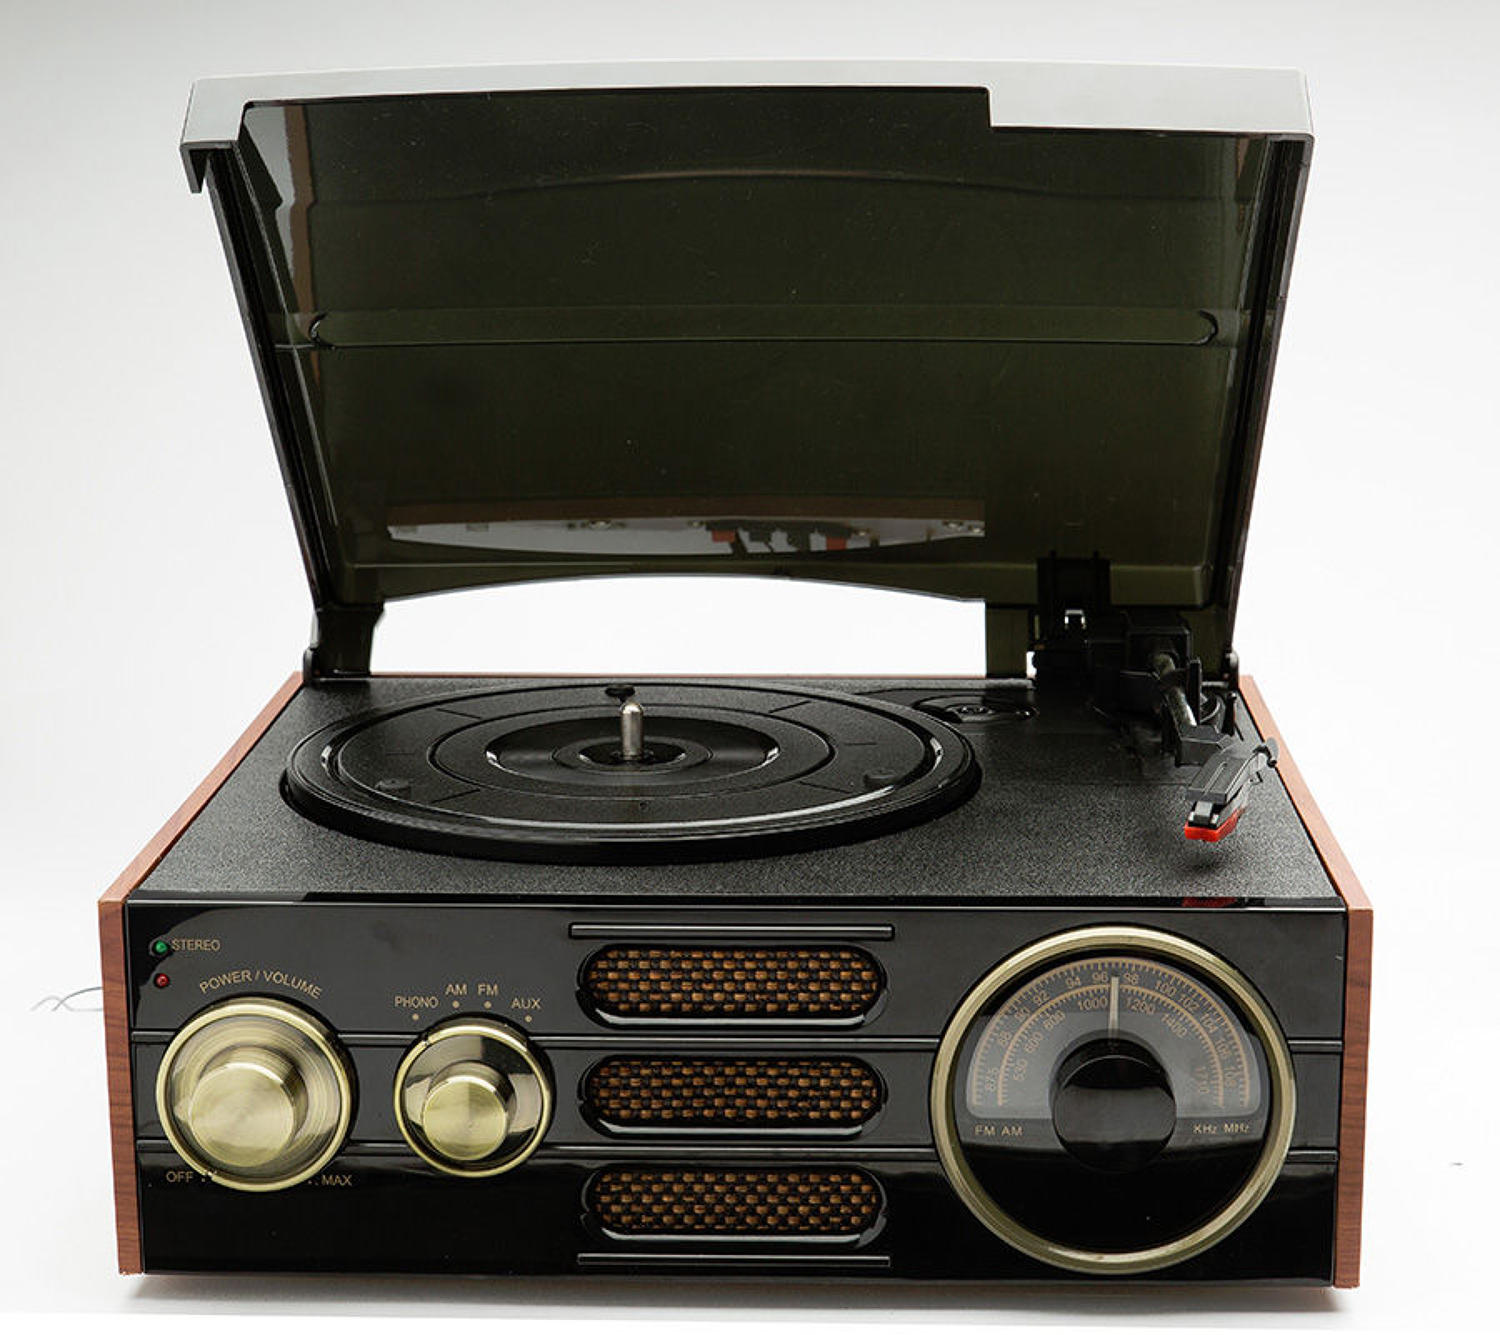 Empire - A retro styled 3 speed record player